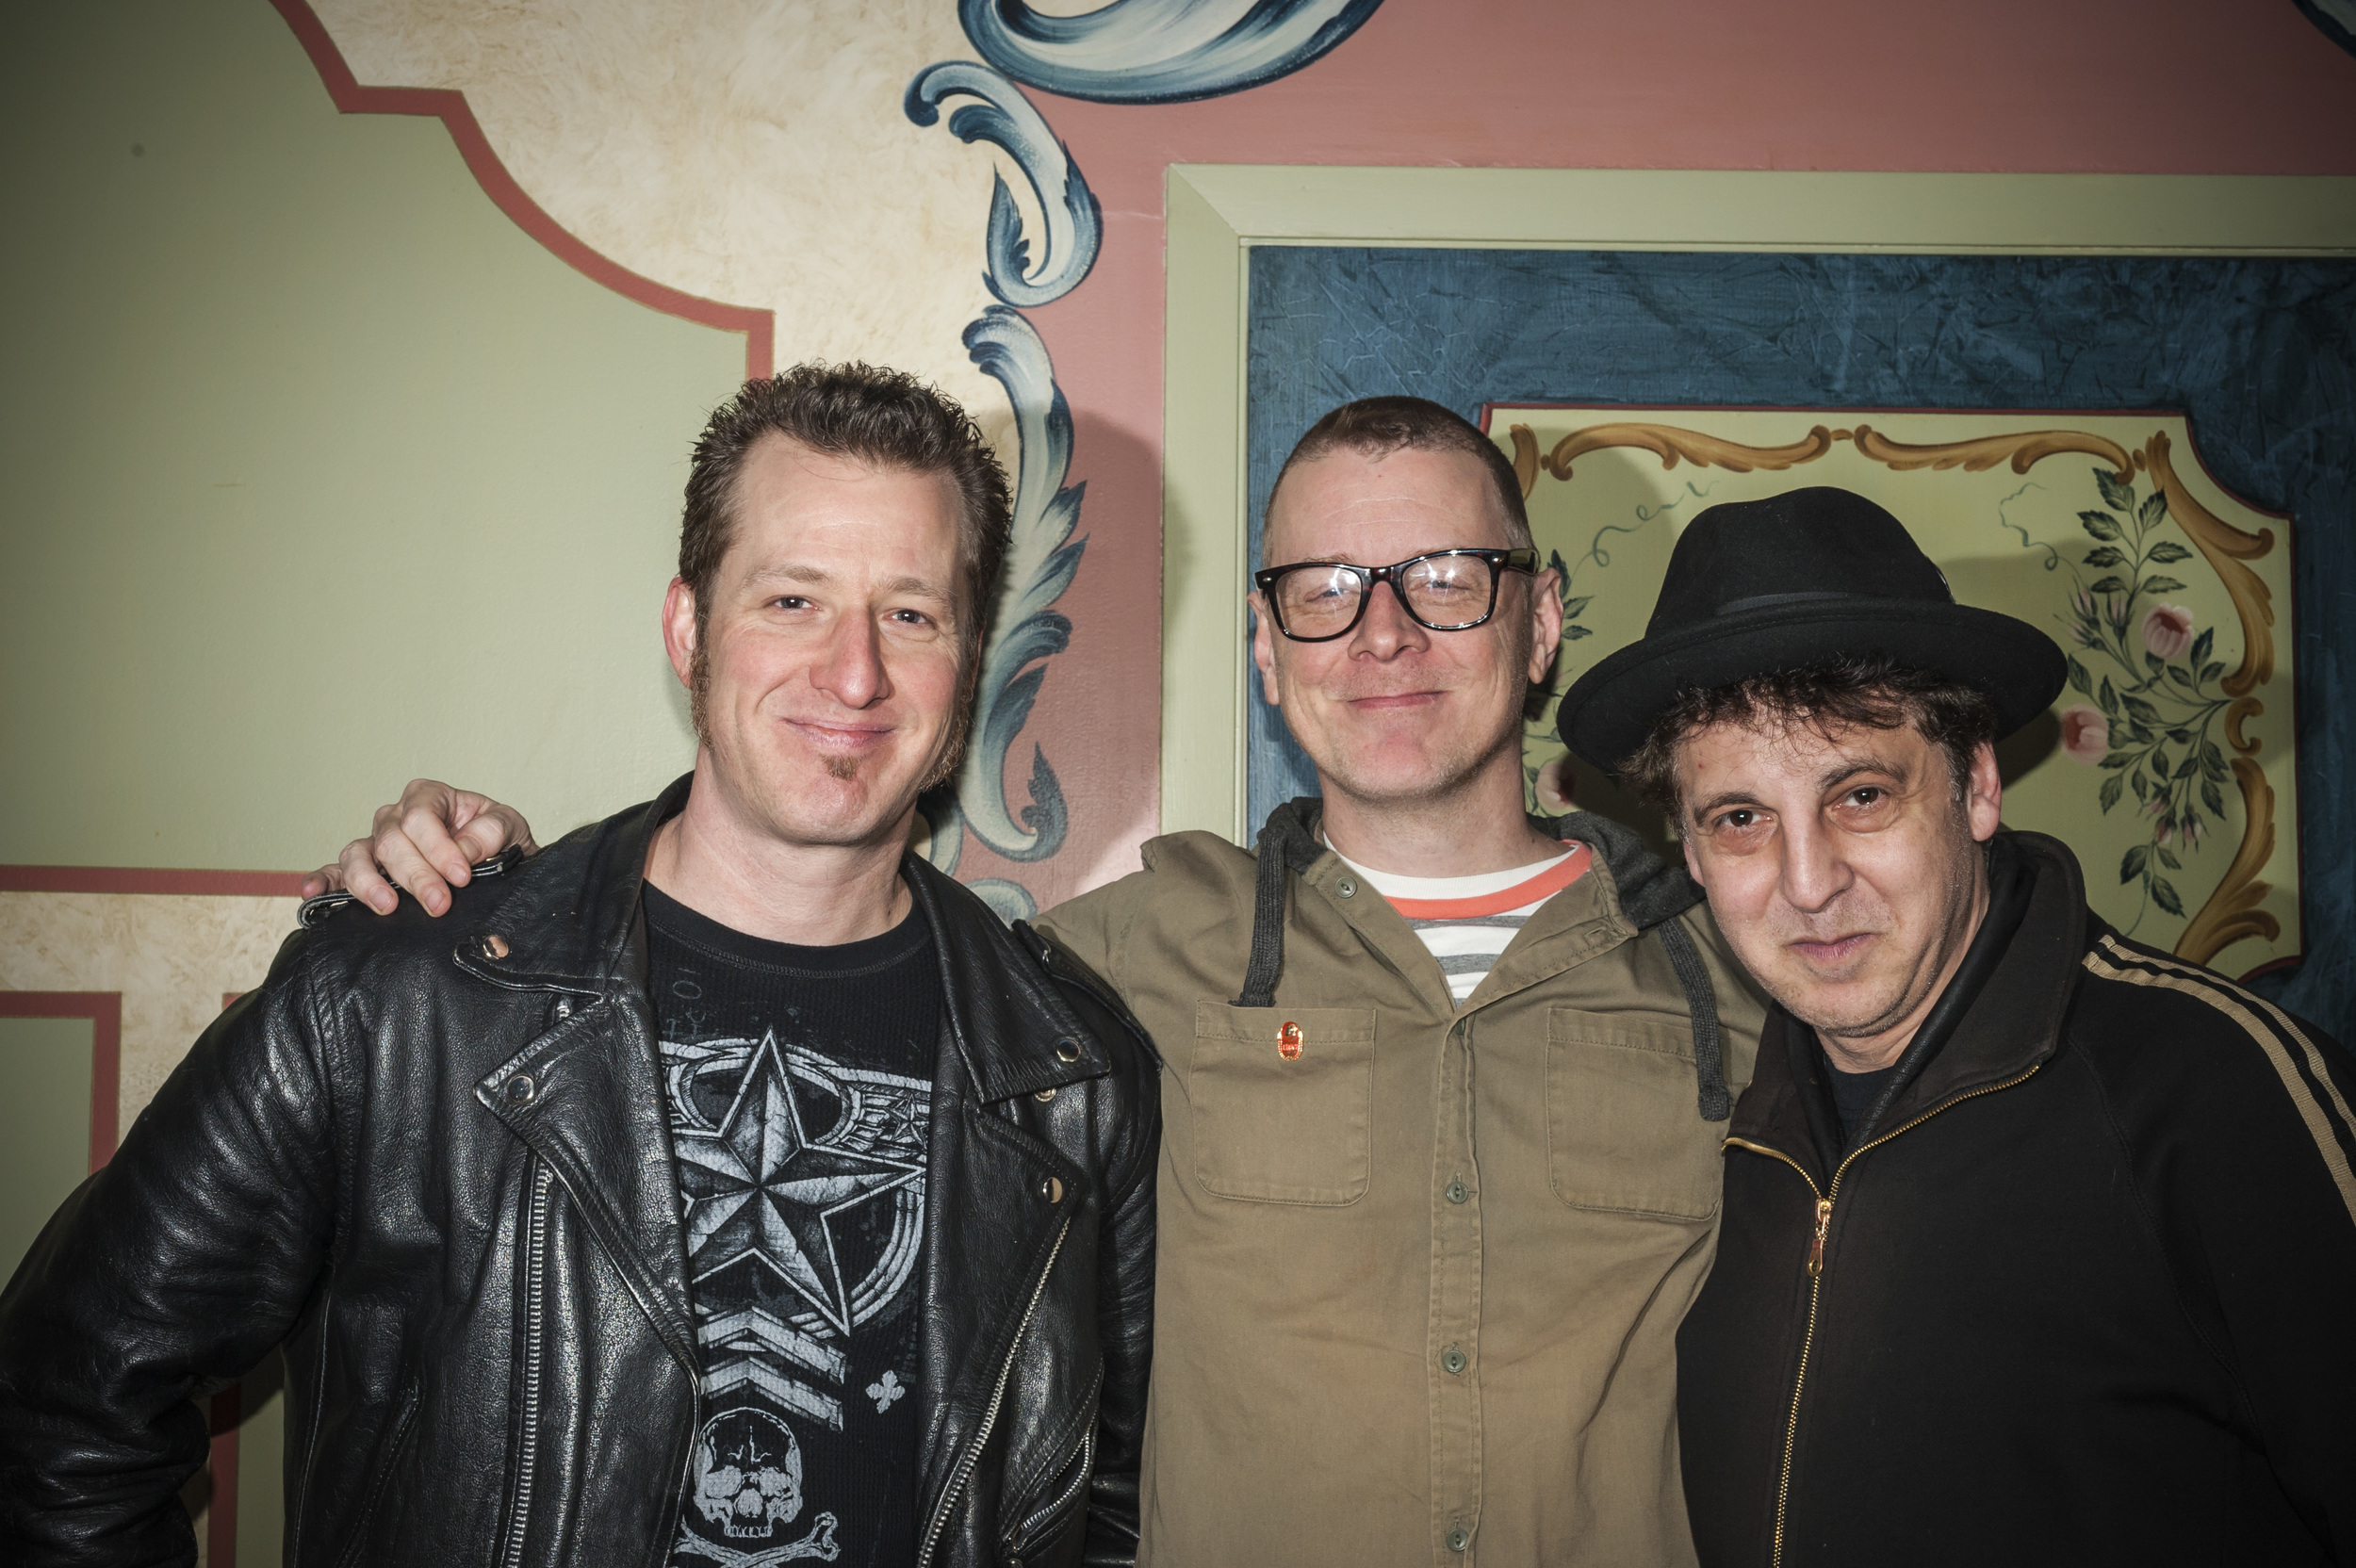 Mike Leonard, John Paulson and Magic Marc / Black Forest Inn / Minneapolis, Minnesota / January 29th, 2015 / Photo by Gamini Kumara